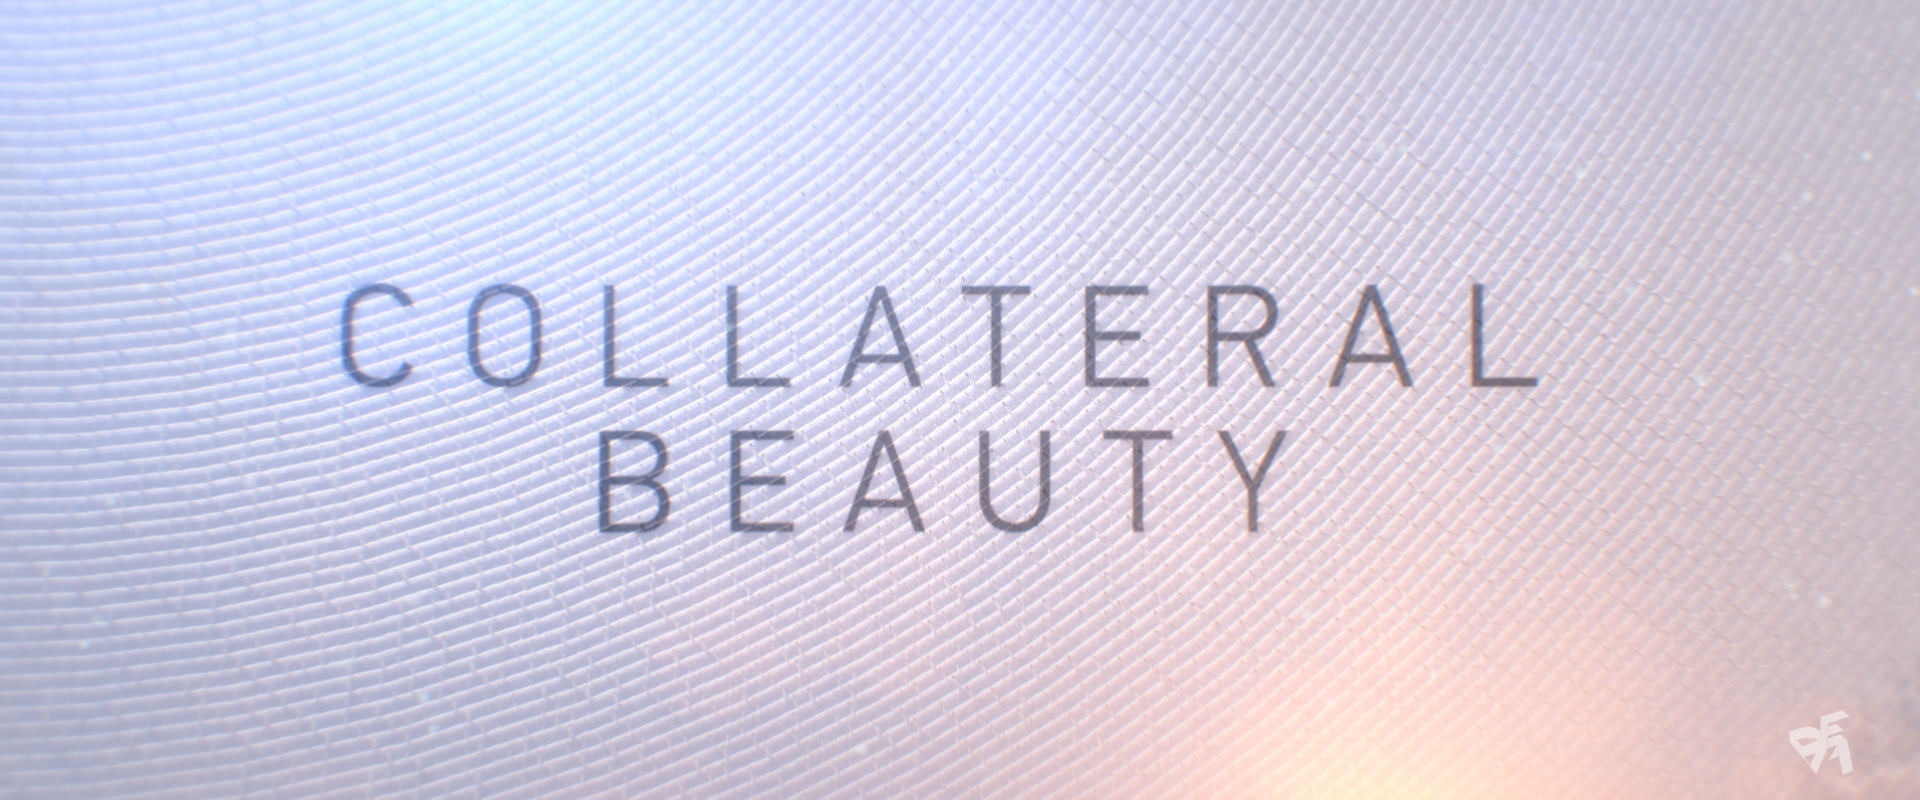 CollateralBeauty-STYLEFRAME_01.jpg